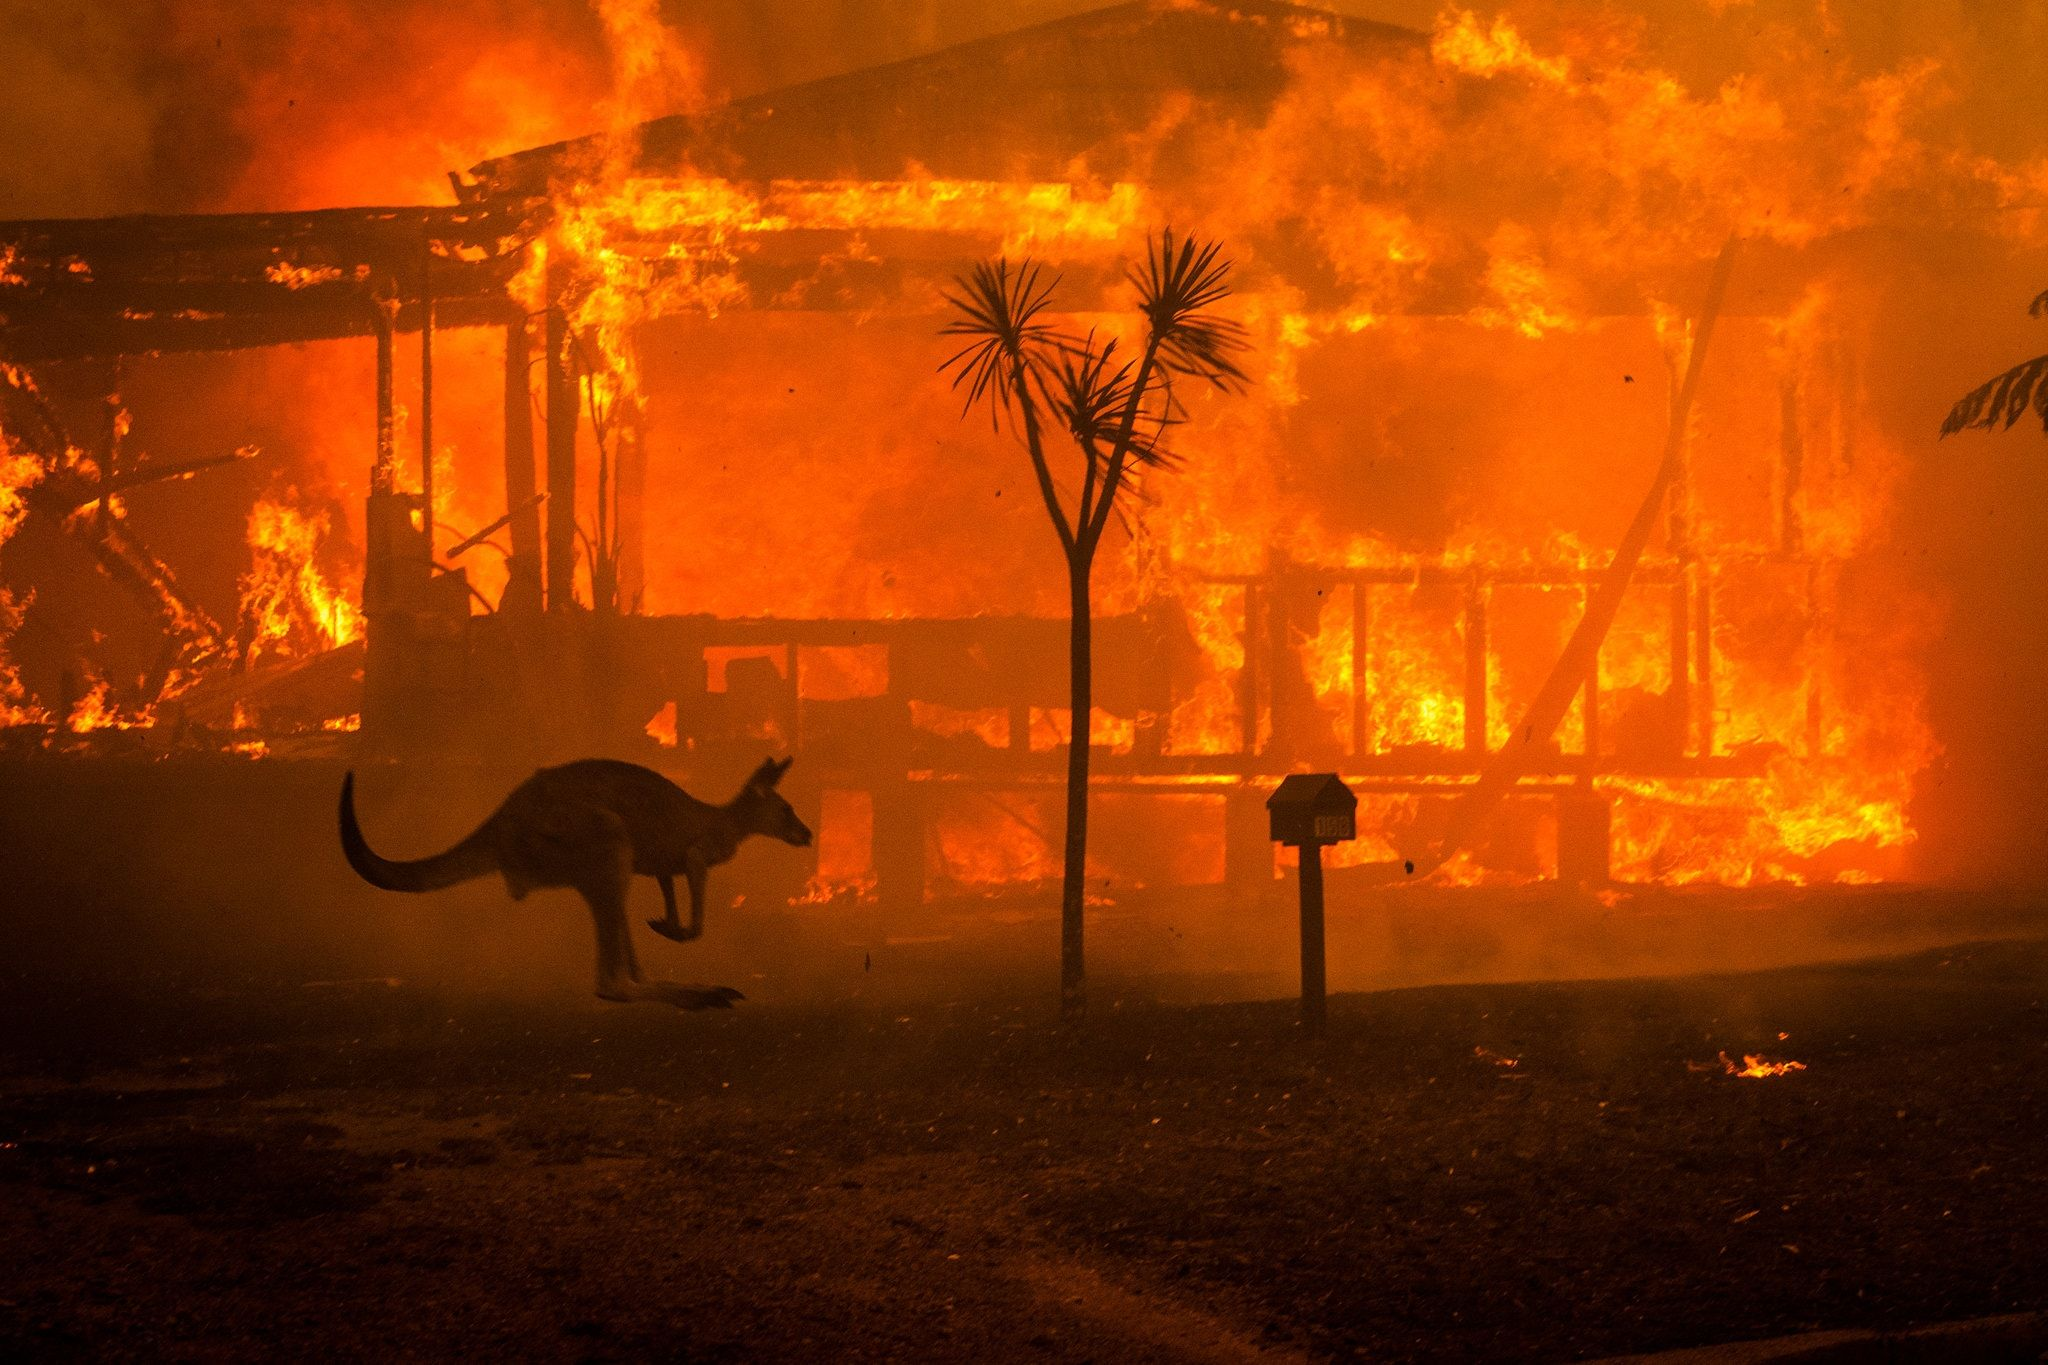 Carnival Australia supports Red Cross bushfire fund